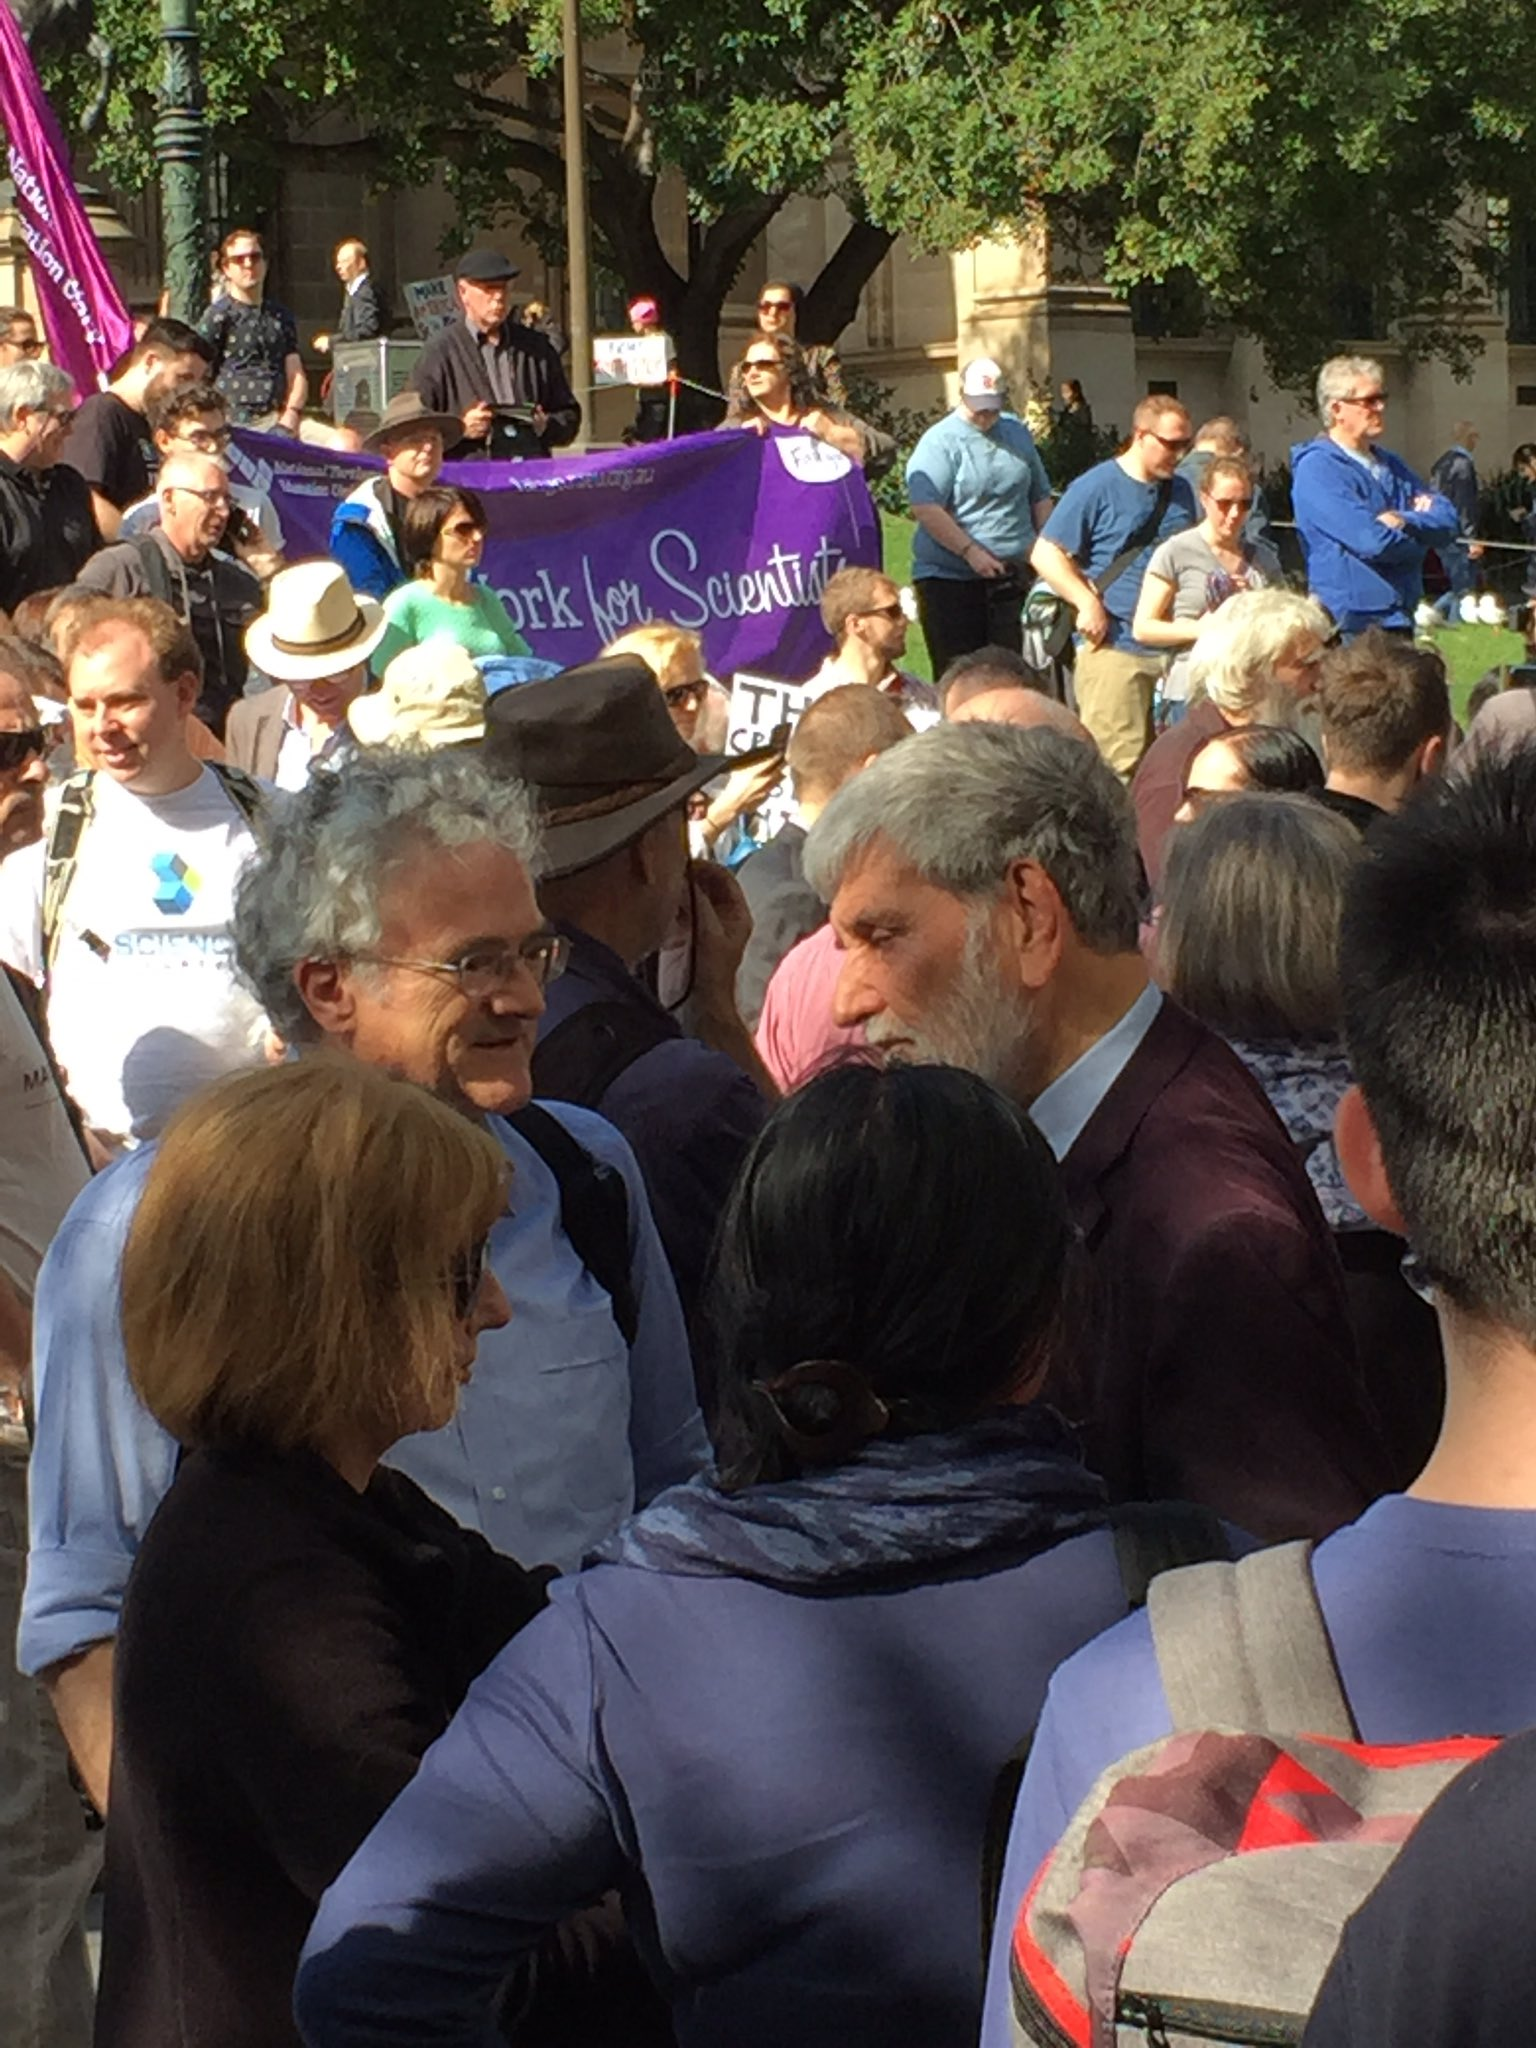 Barry says opinions and facts never ought to be conflated #marchforscience #Melbourne I failed to get science on the political agenda https://t.co/RvcKqsUeYT